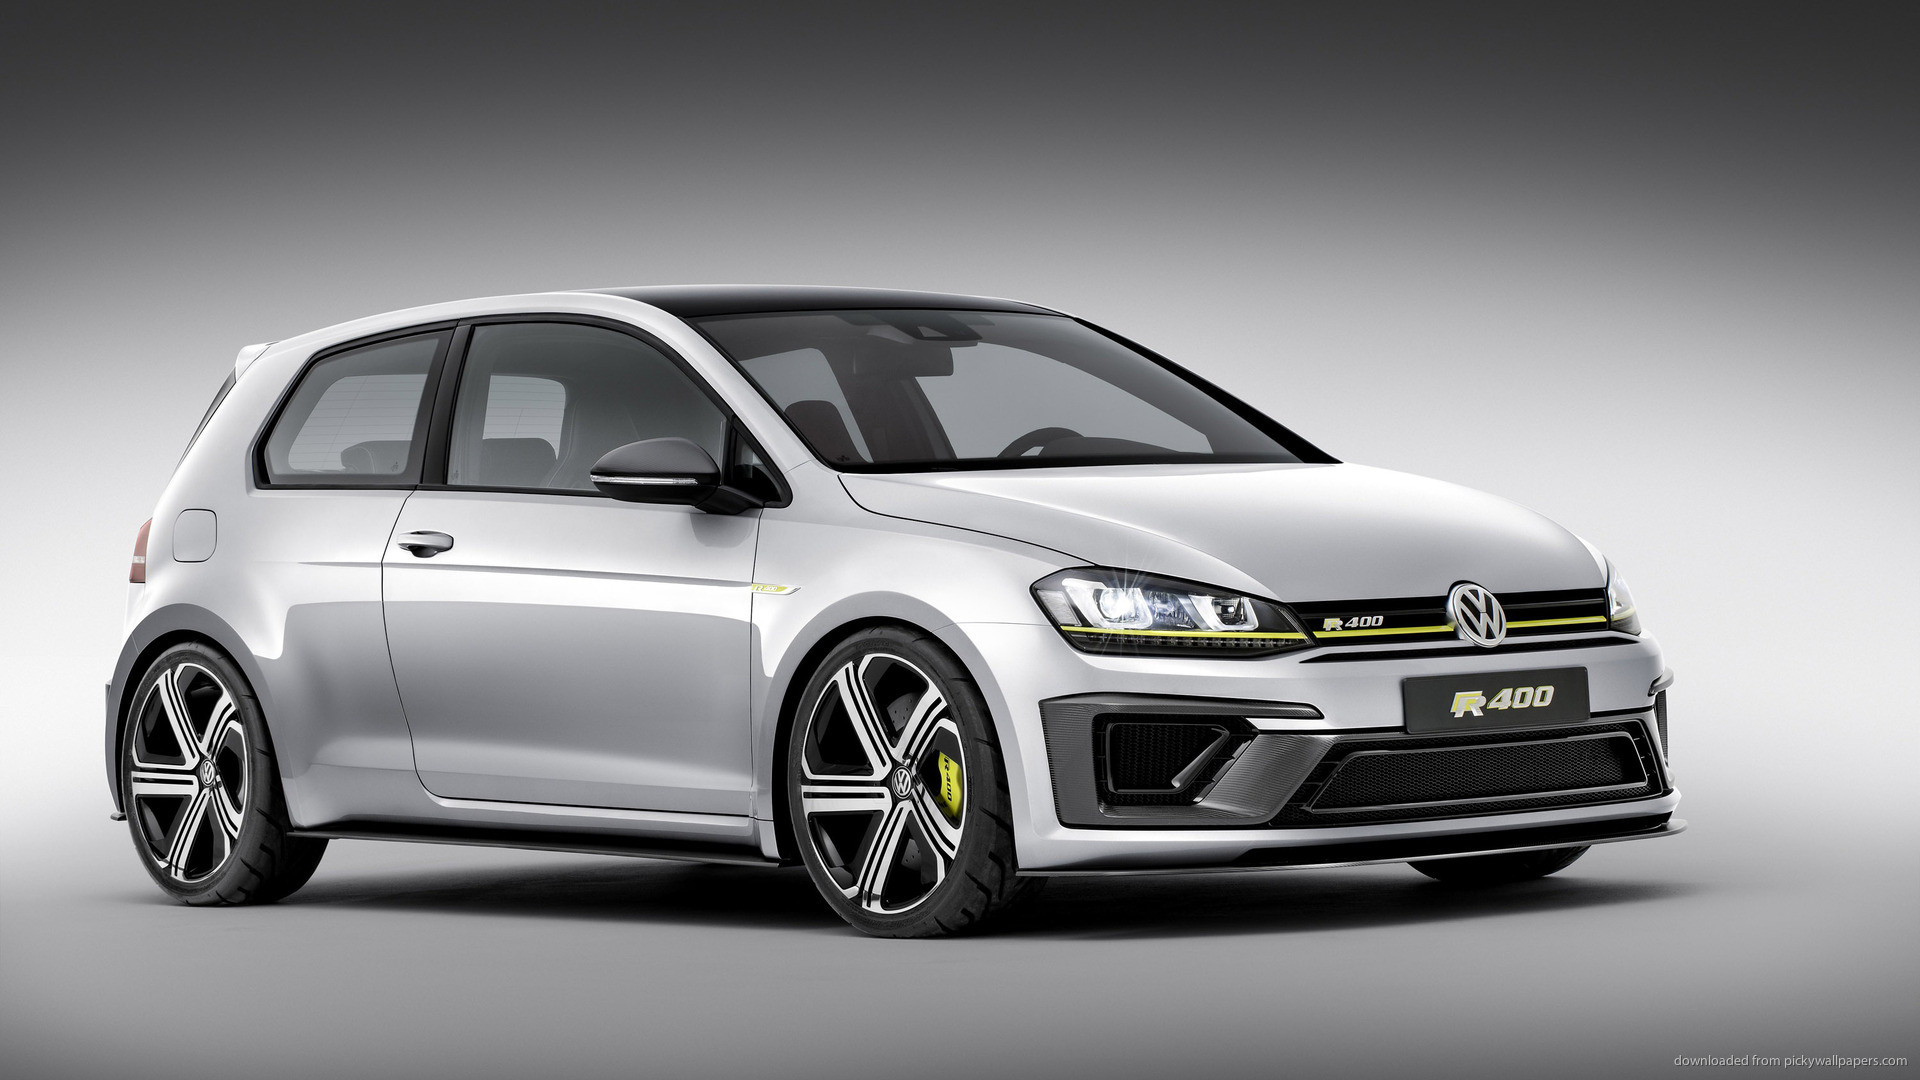 Volkswagen Golf R 400 Concept Car Coupe picture